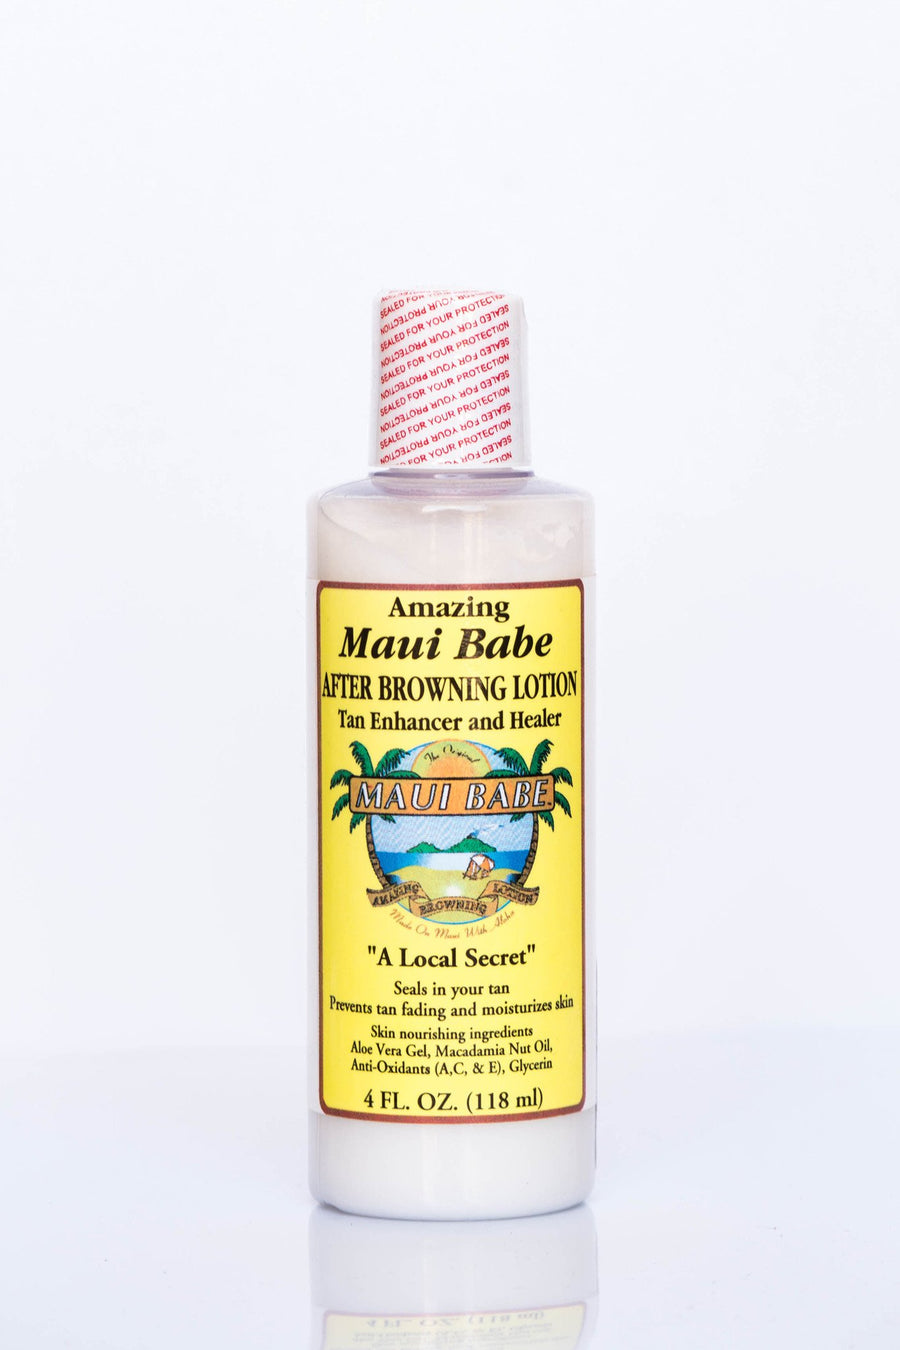 Maui Babe After Browning Lotion / 4 oz